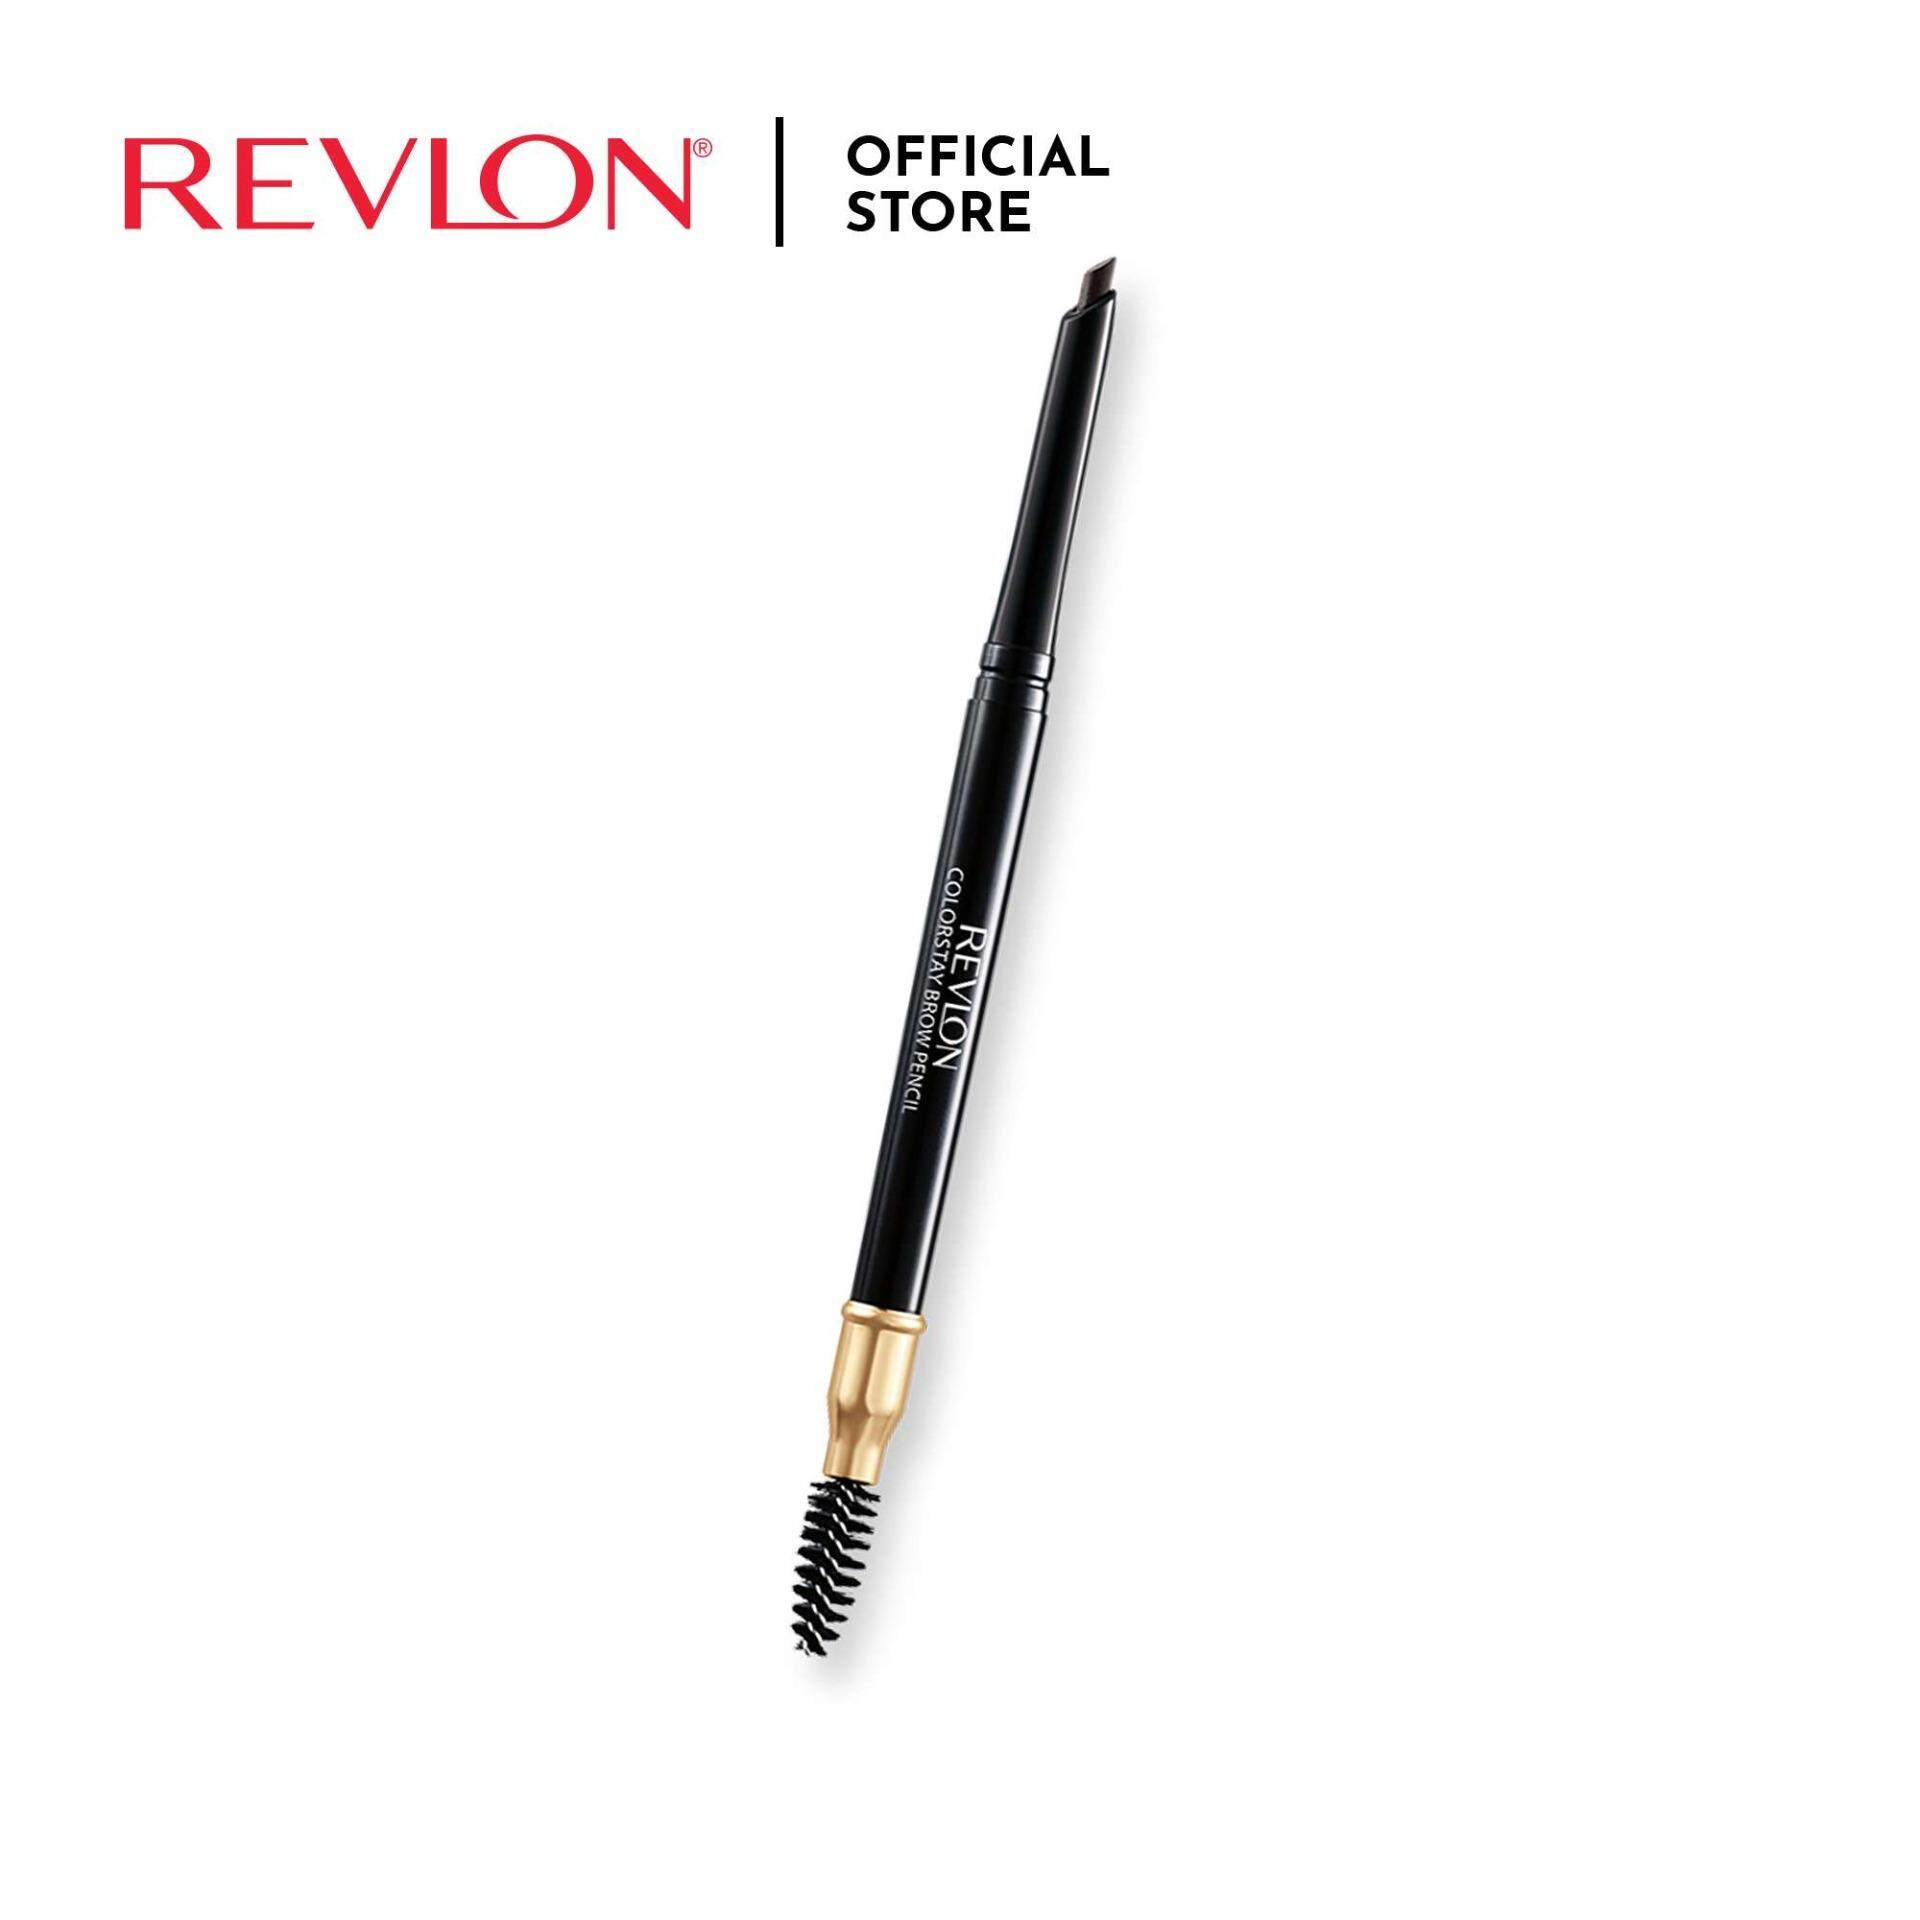 Revlon Colorstay Brow Pencil - Soft Black